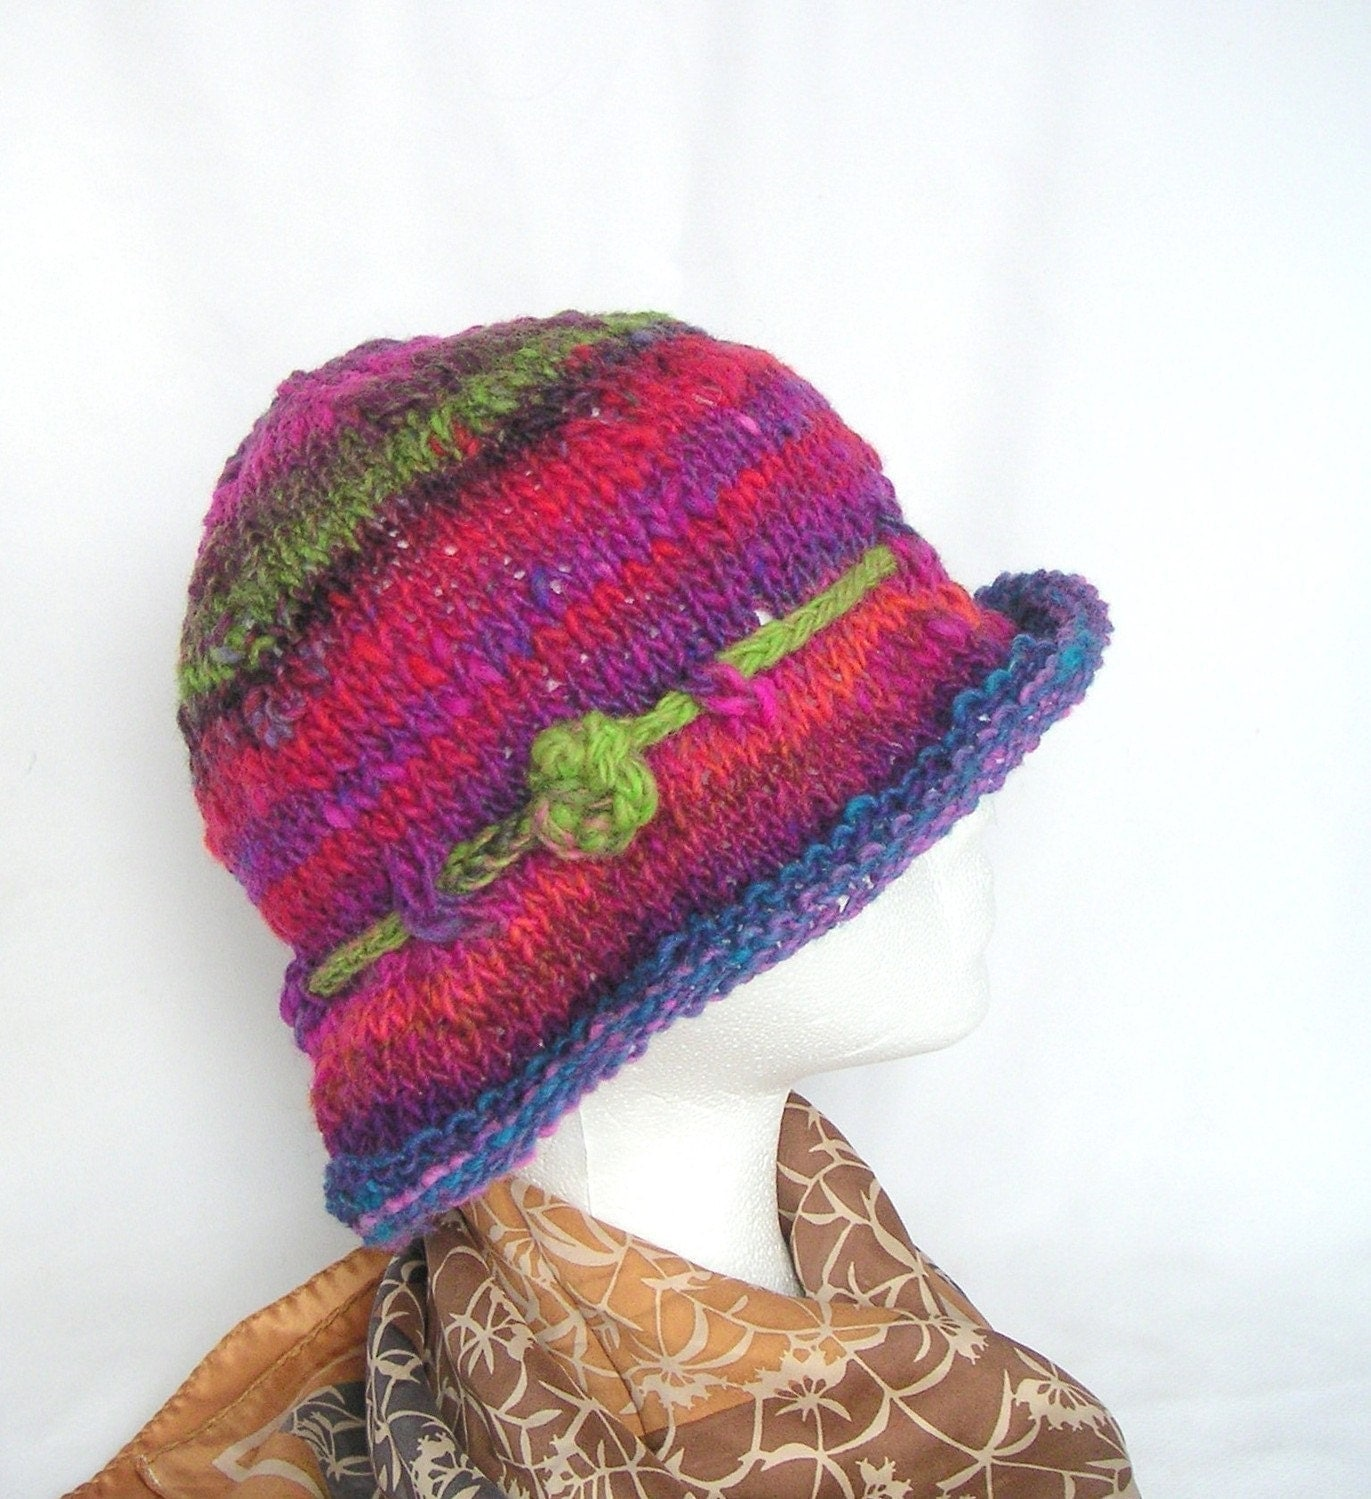 Simple Hat Knitting Pattern In The Round : Simple Knit Hat Knitting Pattern Easy Knit by GraceKnittingPattern